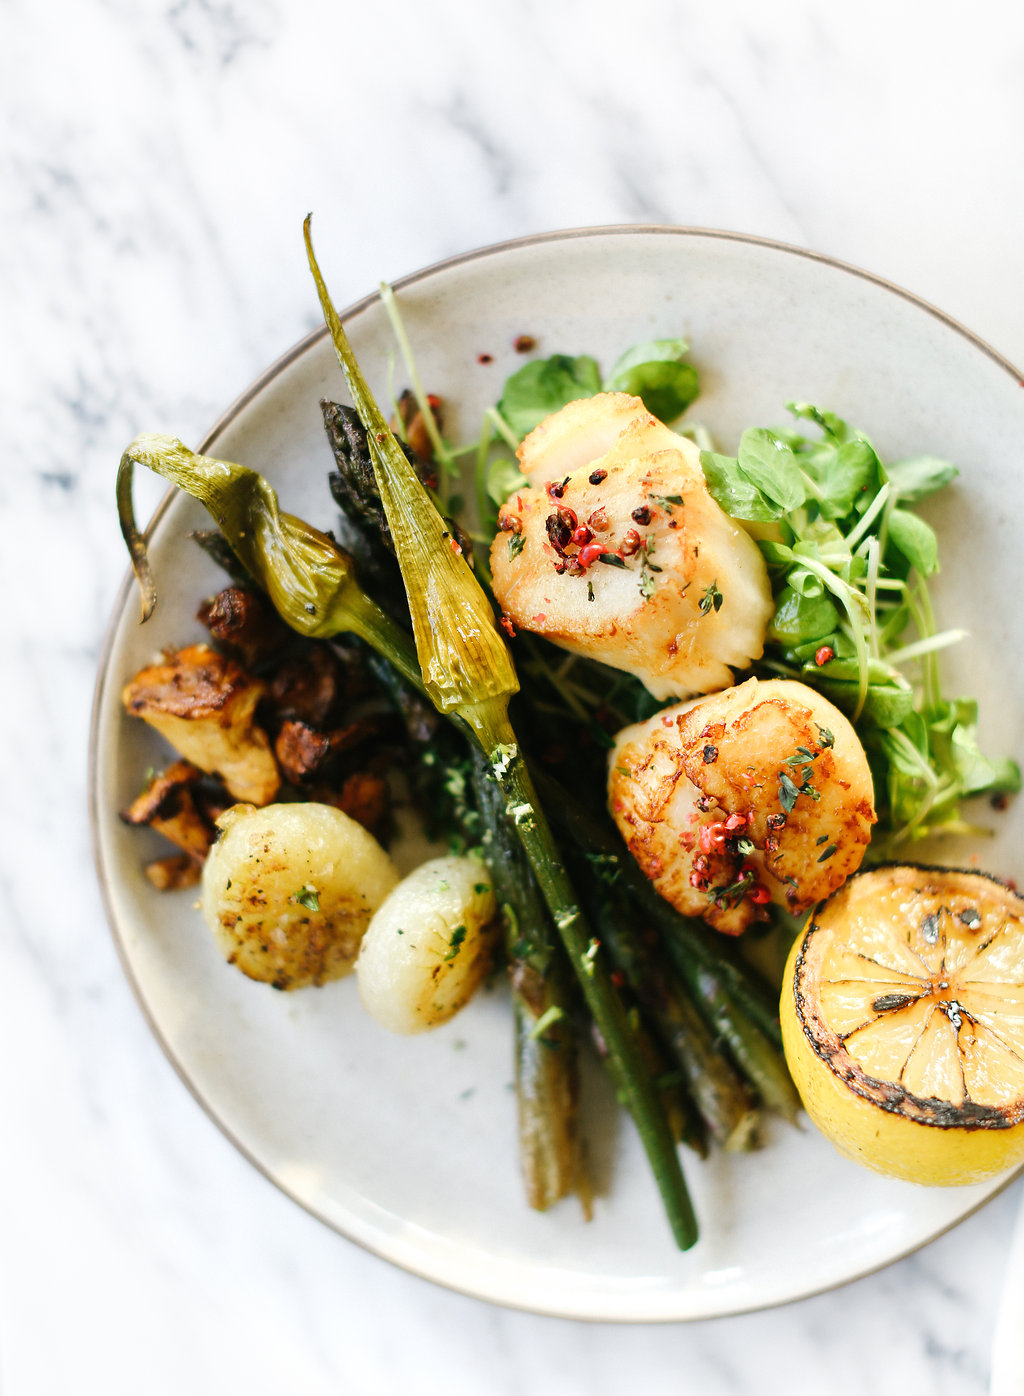 Less than an hour and you've got yourself a delicious pan-seared scallops meal that is perfect for a date-night on the patio, dinner with friends, or just a fun way to spice up your daily dinner.